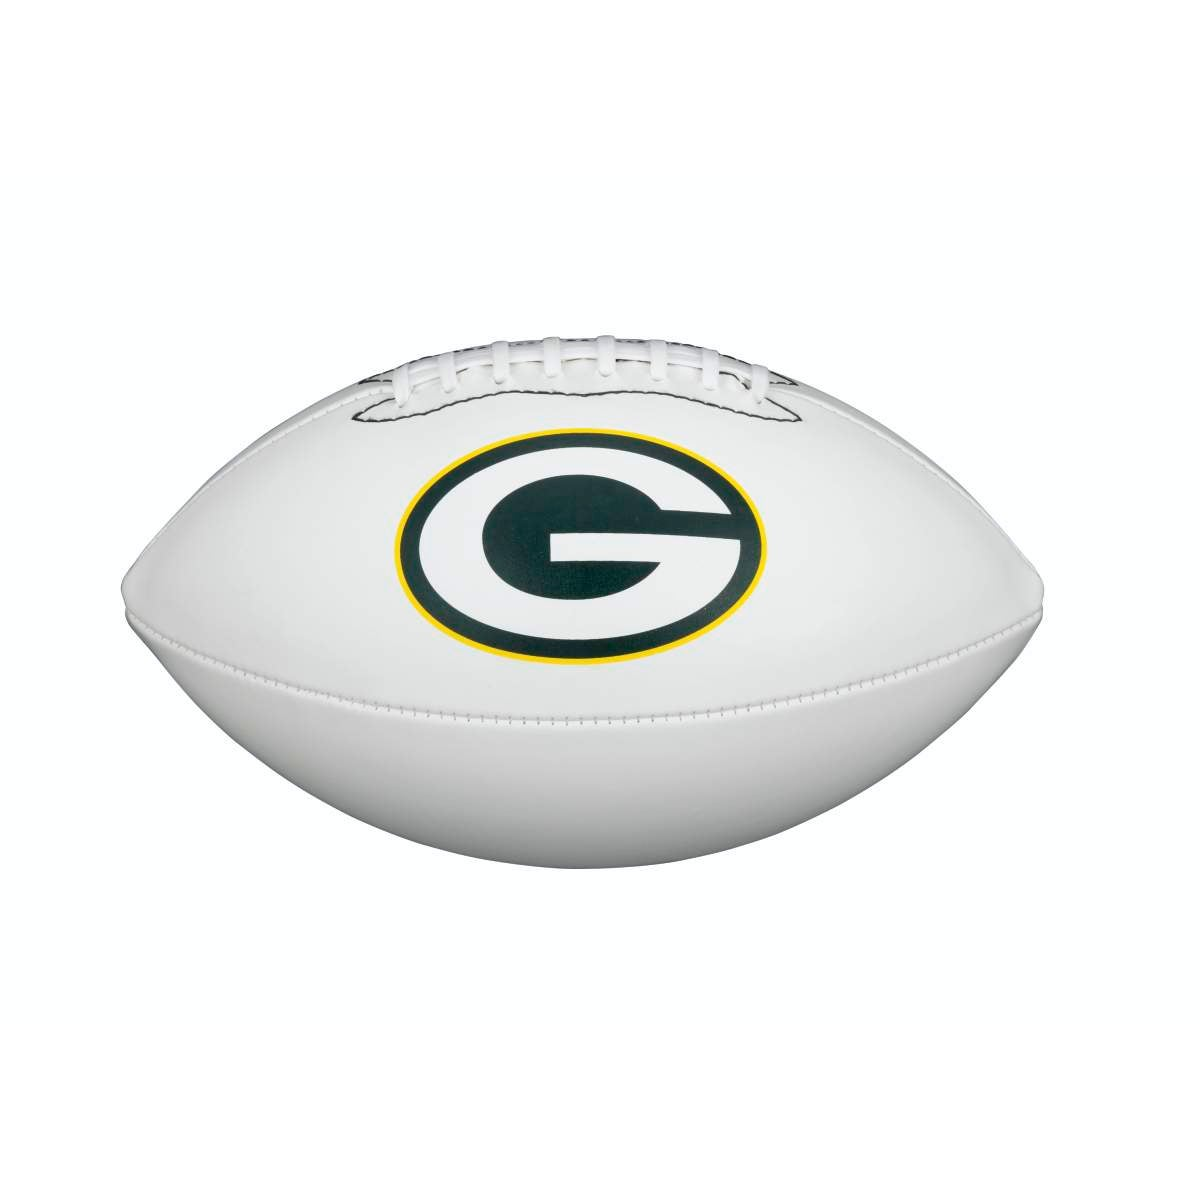 NFL TEAM LOGO AUTOGRAPH FOOTBALL - OFFICIAL, GREEN BAY PACKERS